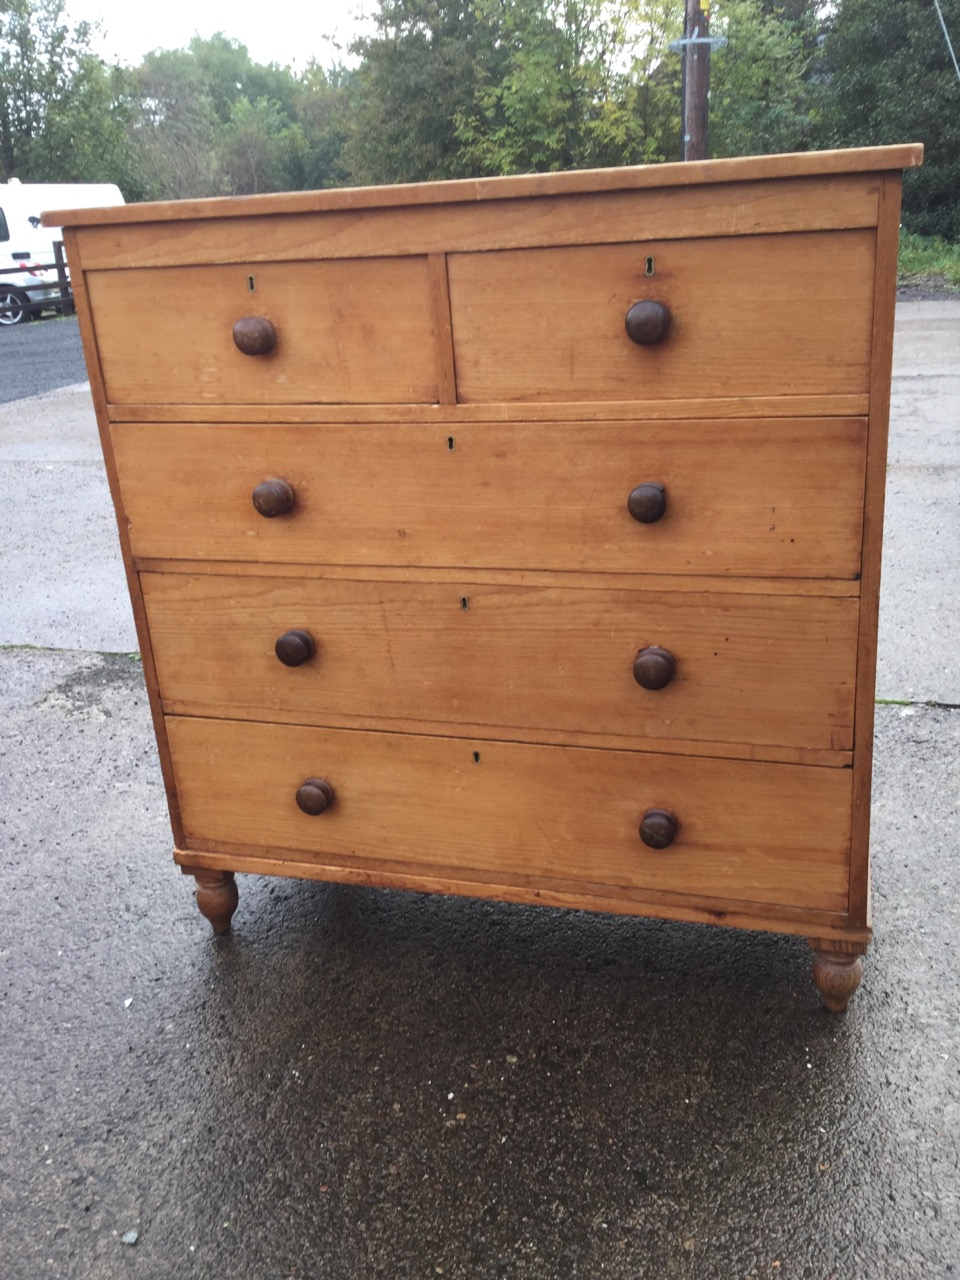 Lot 17 - A Victorian pine chest of drawers with two short and three long drawers mounted with knobs, raised